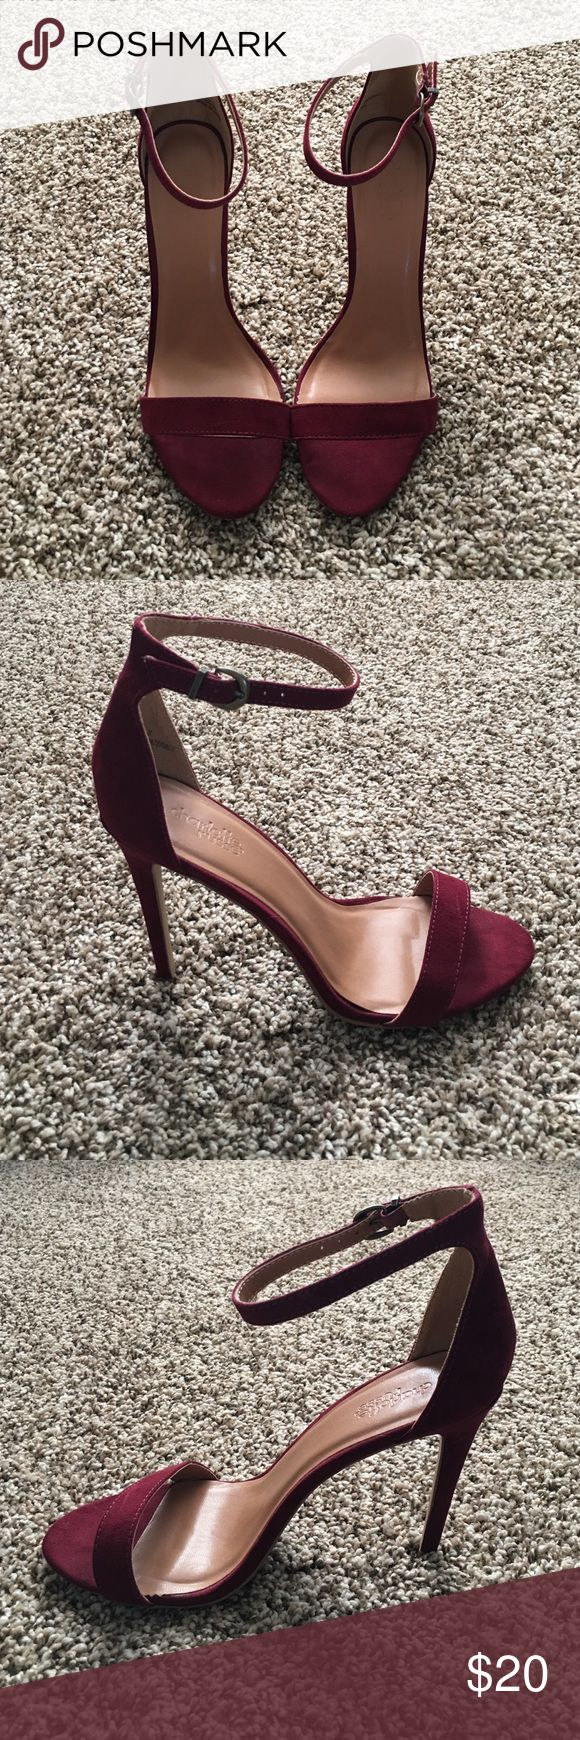 Charlotte Russe maroon heels, size 8 Maroon heels, worn 2 times. Woman's size 8, but I think run more as an 8.5 Charlotte Russe Shoes Heels